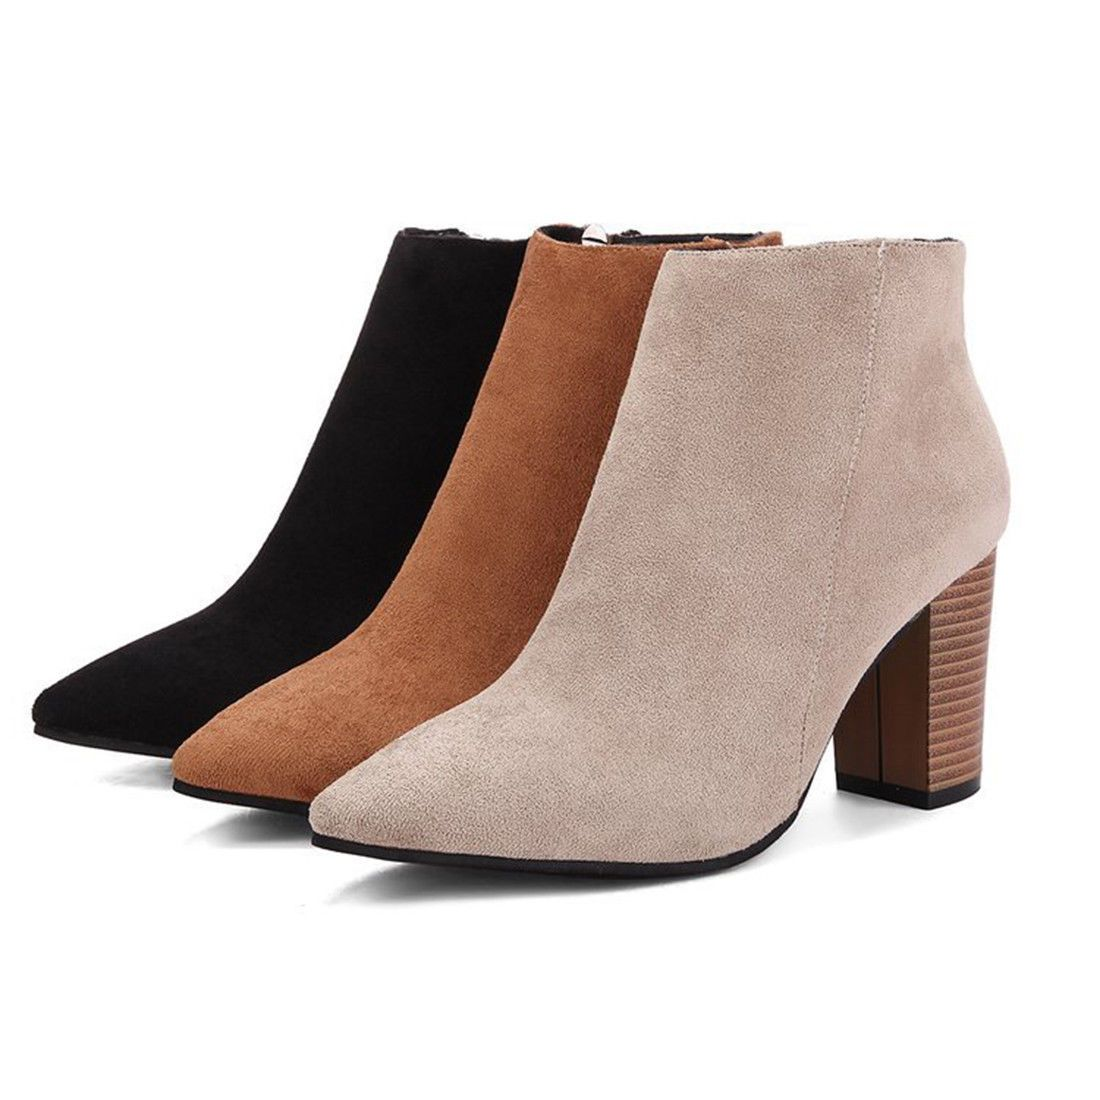 Womens ladies Ankle Boots Pointed Toe High Block Heels Side Zip casual Shoes